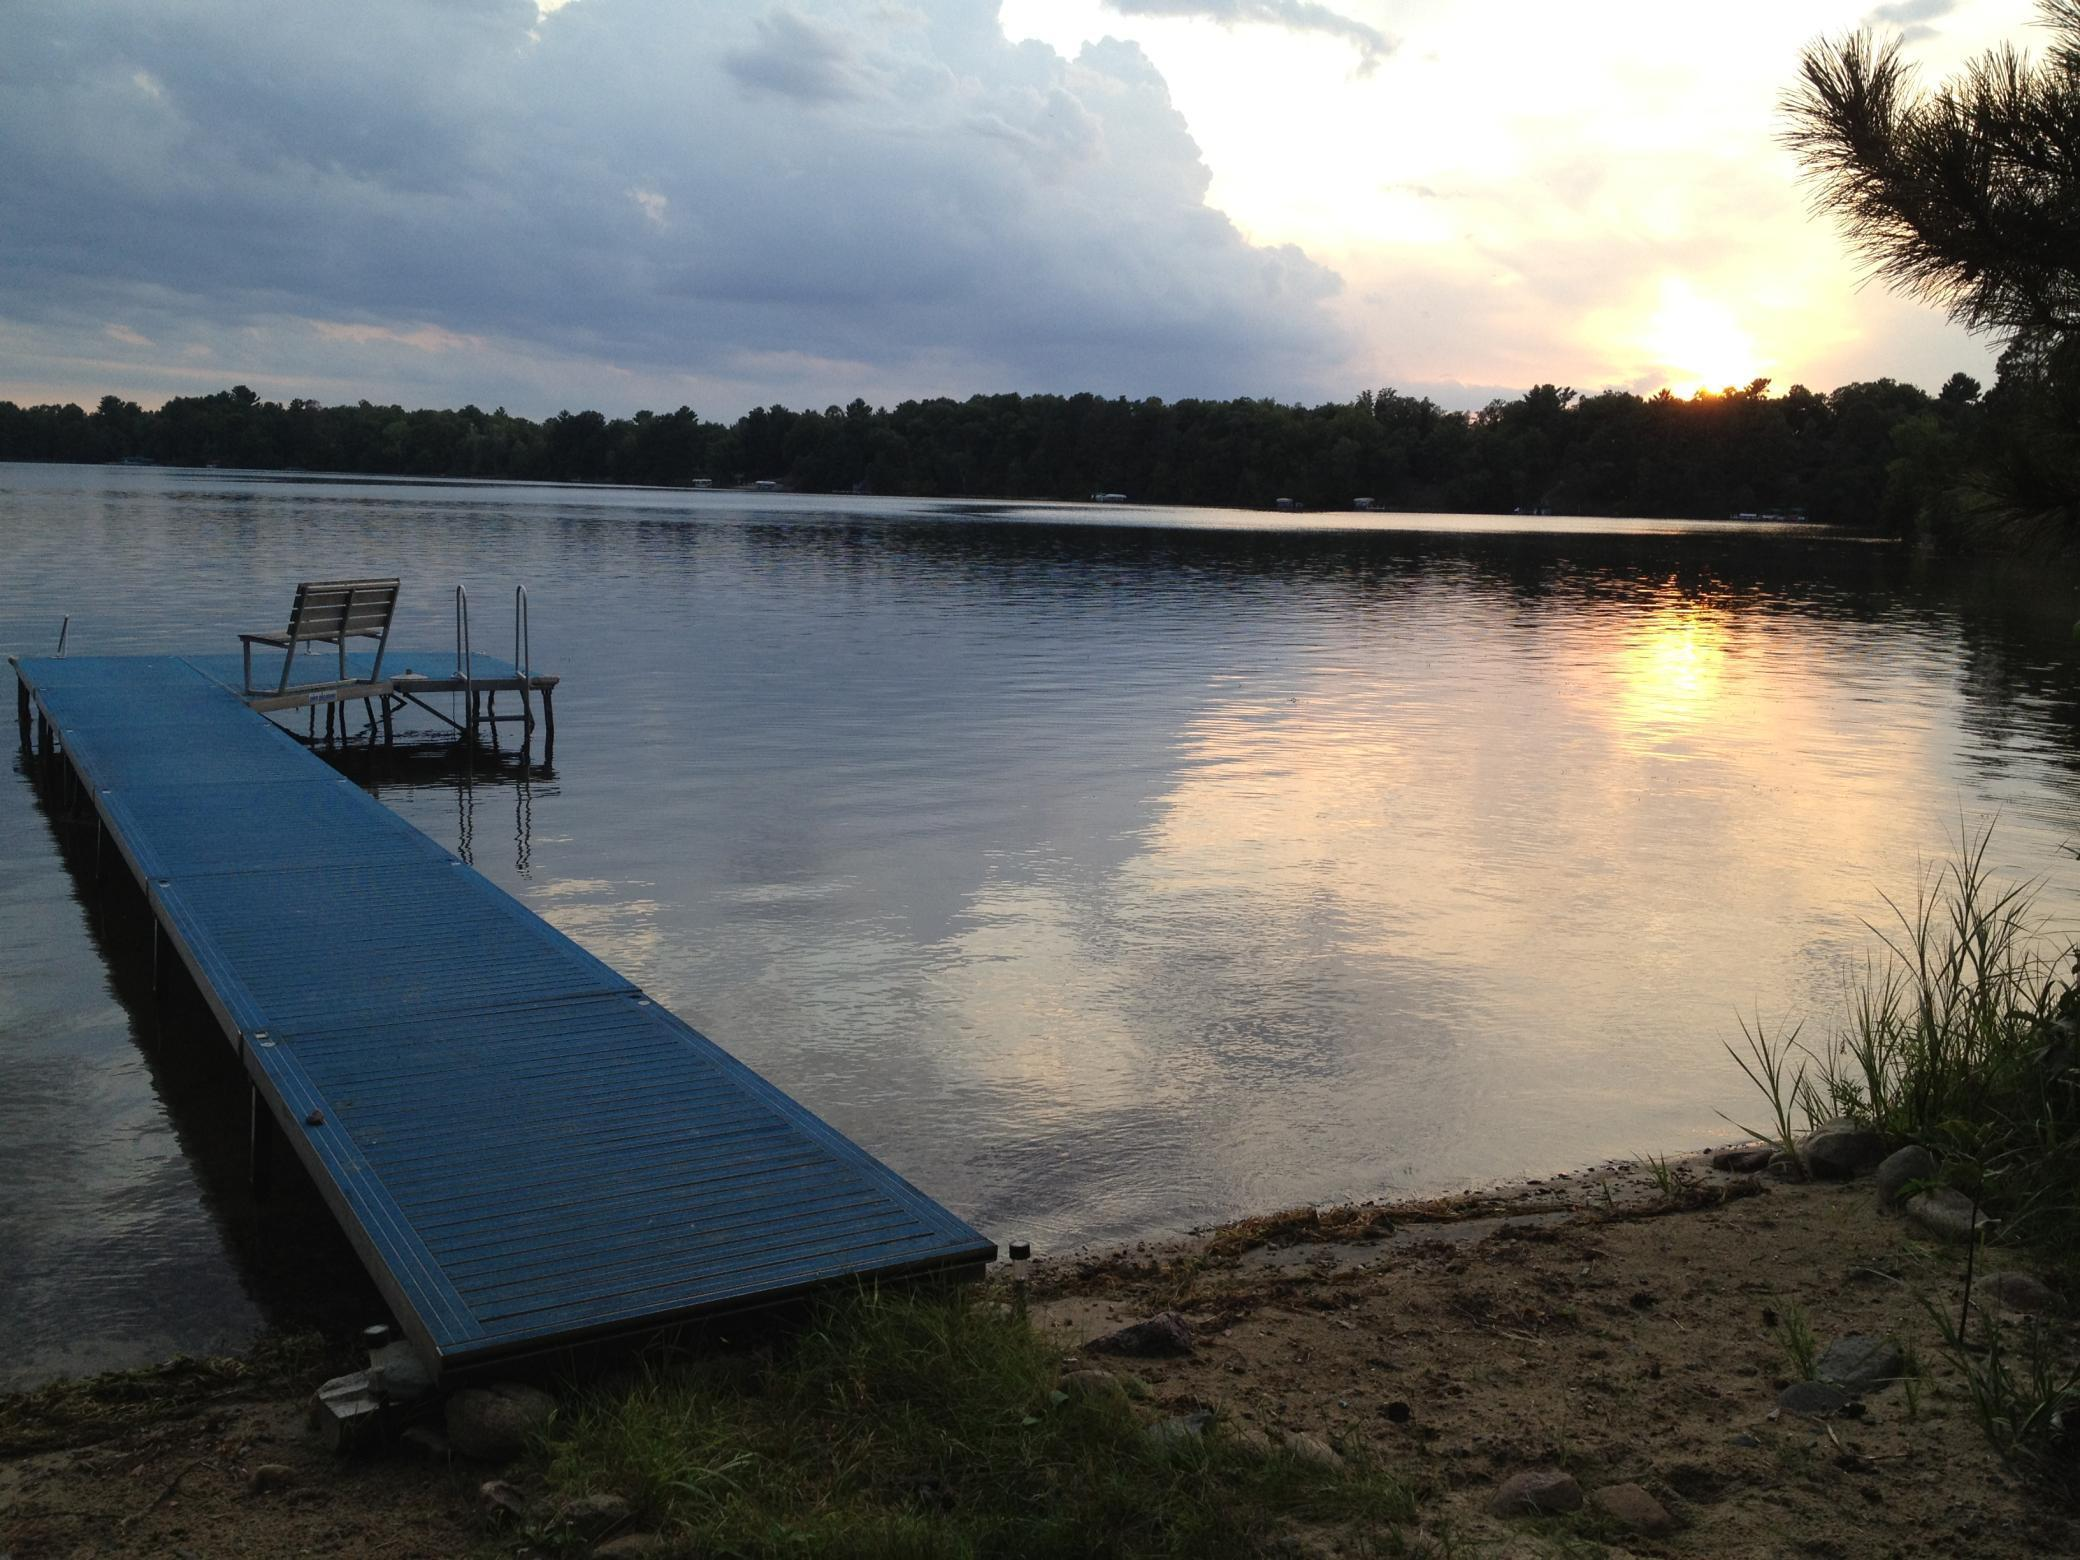 Amazing Property! Unbelievable privacy on the Whitefish Chain! Approx 5 acres and 1100' sandy shoreline on the Big Island of Rush Lake.  Beautiful sunsets!  Wildlife abound.  What more could you ask for? 2 furnished cabins with electric/sewer/well/internet.  Use the cabins now and build your dream retreat later or enjoy as is.   Adjoining property available.